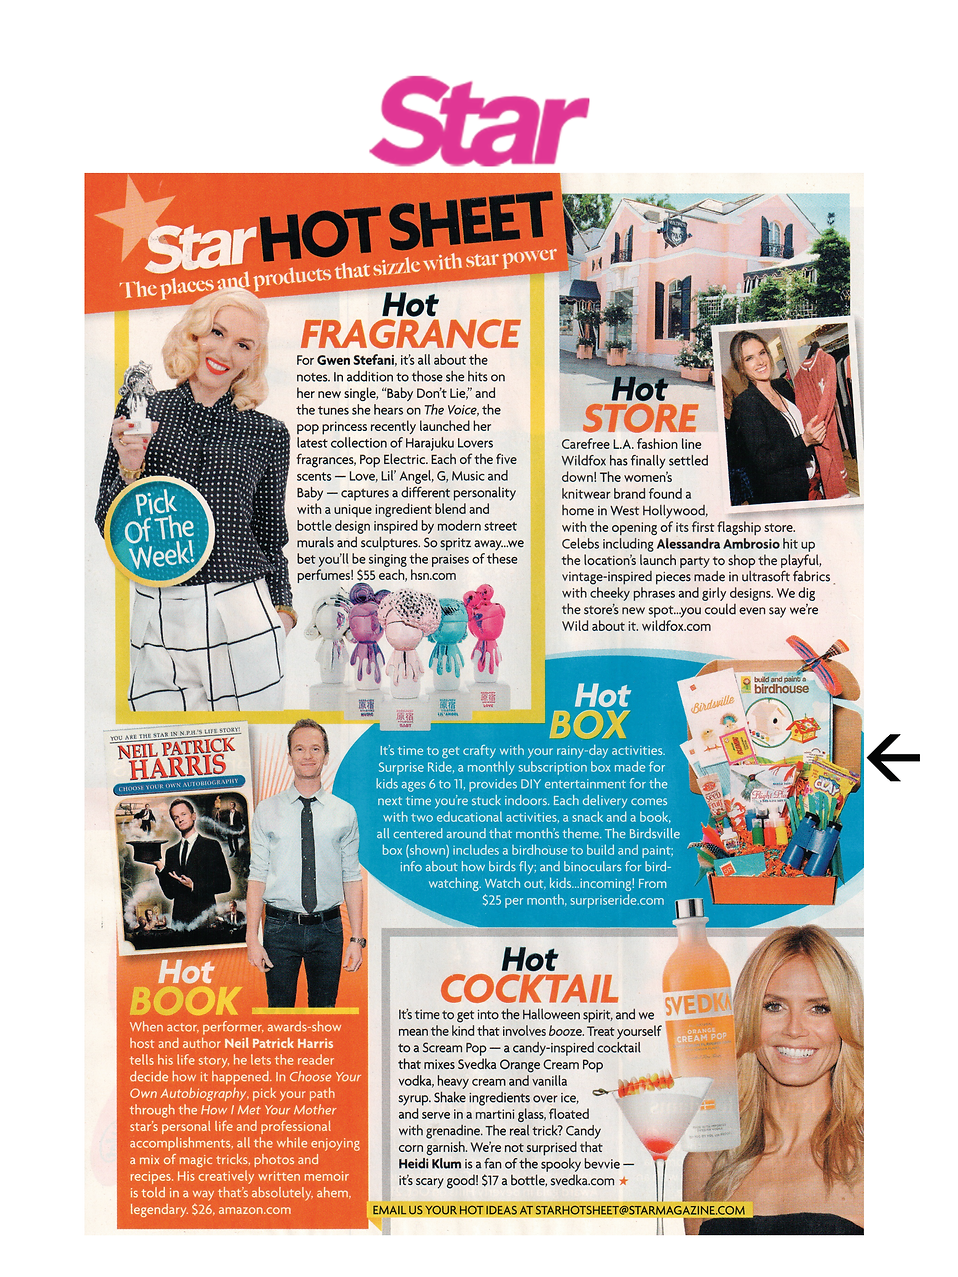 Star Magazine Hot Sheet